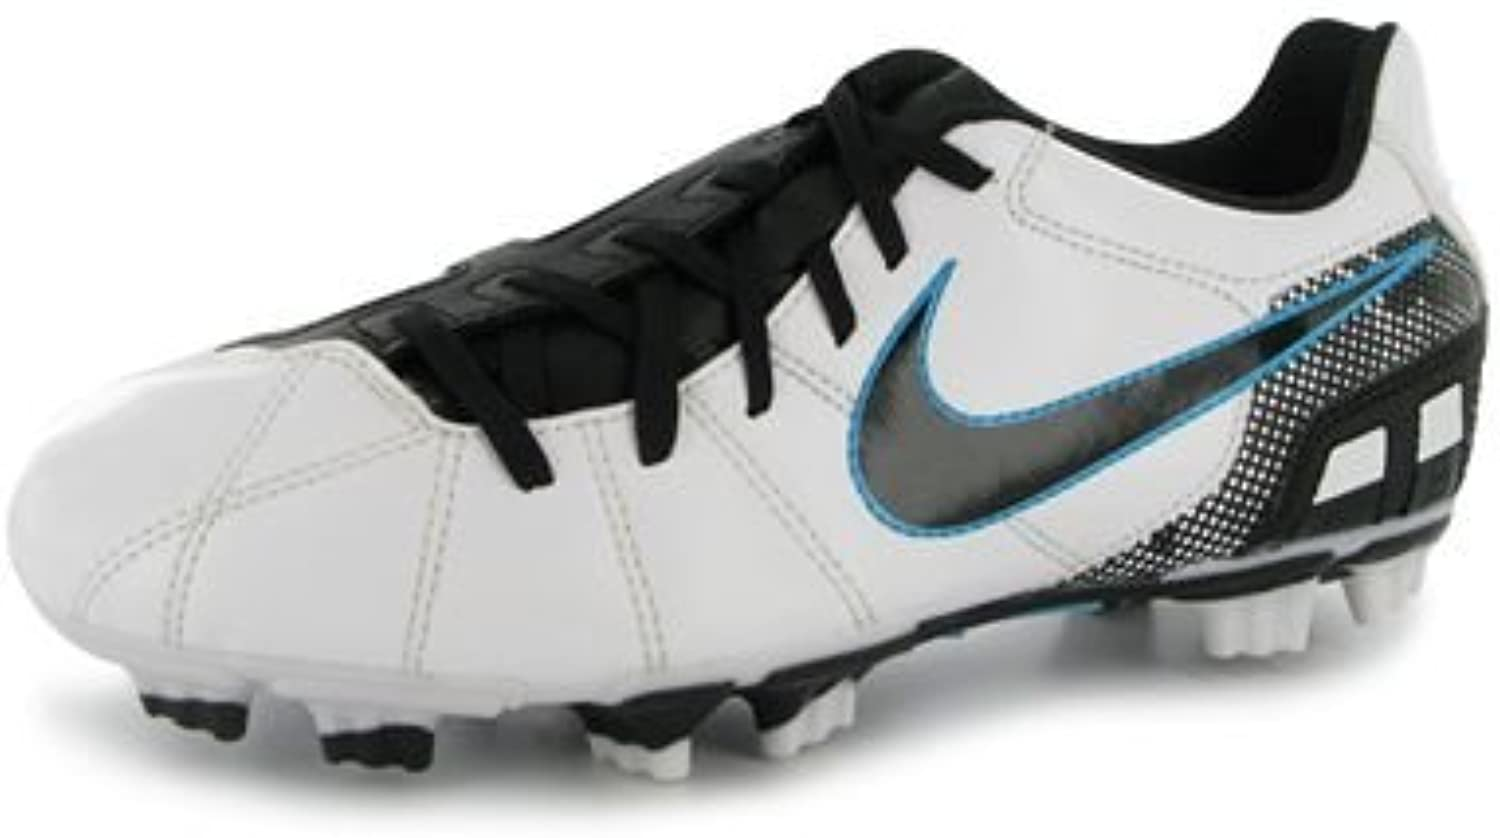 Nike Youth Total90 Shoot III FG White